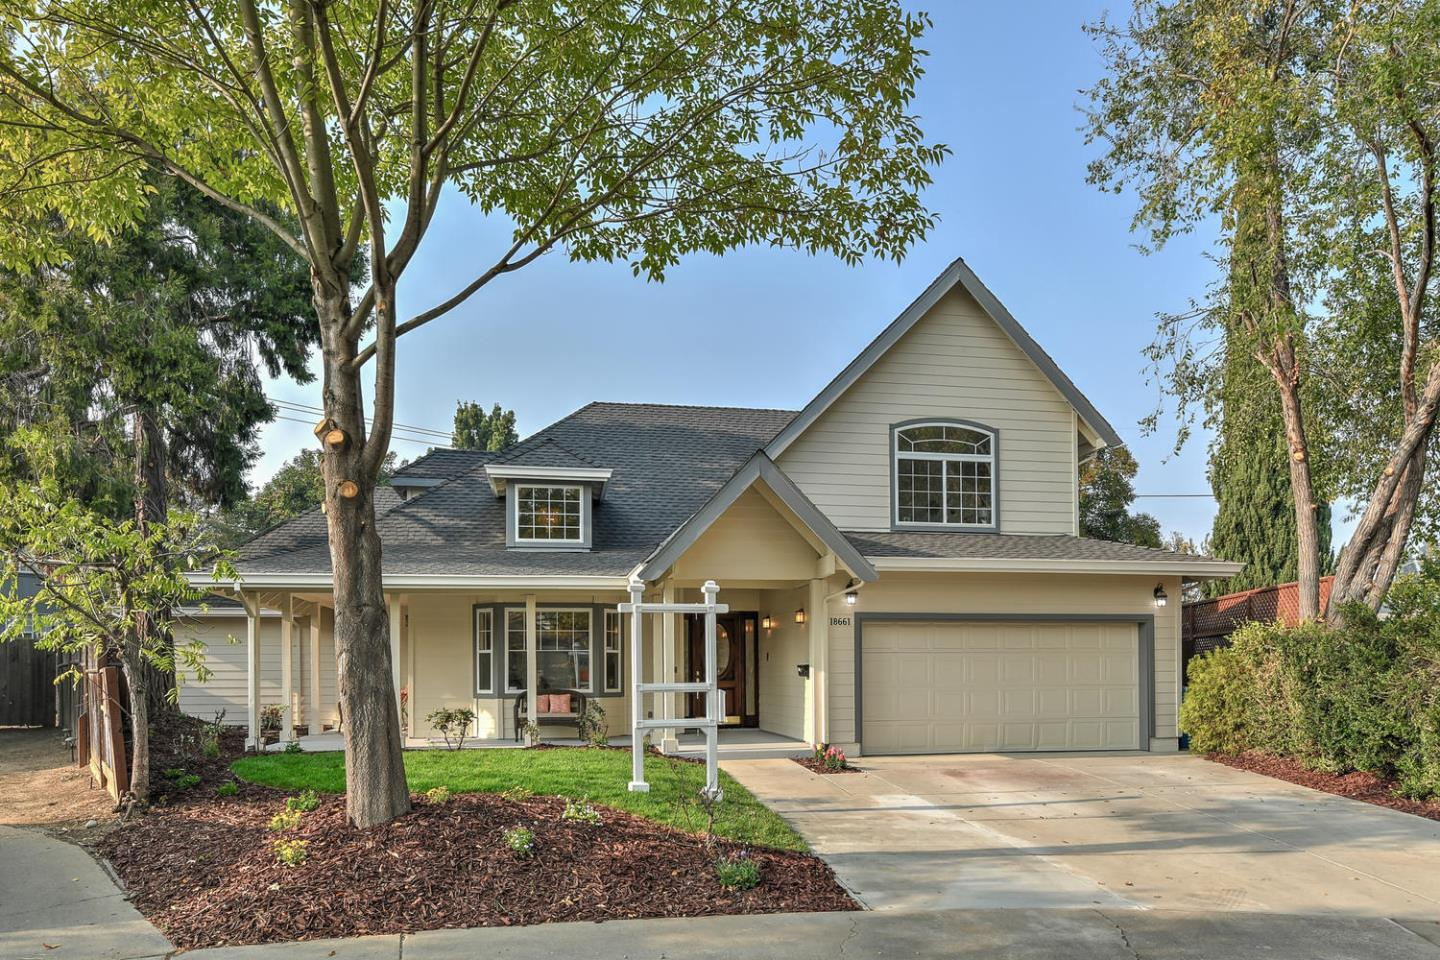 Detail Gallery Image 1 of 1 For 18661 Runo Ct, Cupertino, CA, 95014 - 4 Beds | 3/1 Baths